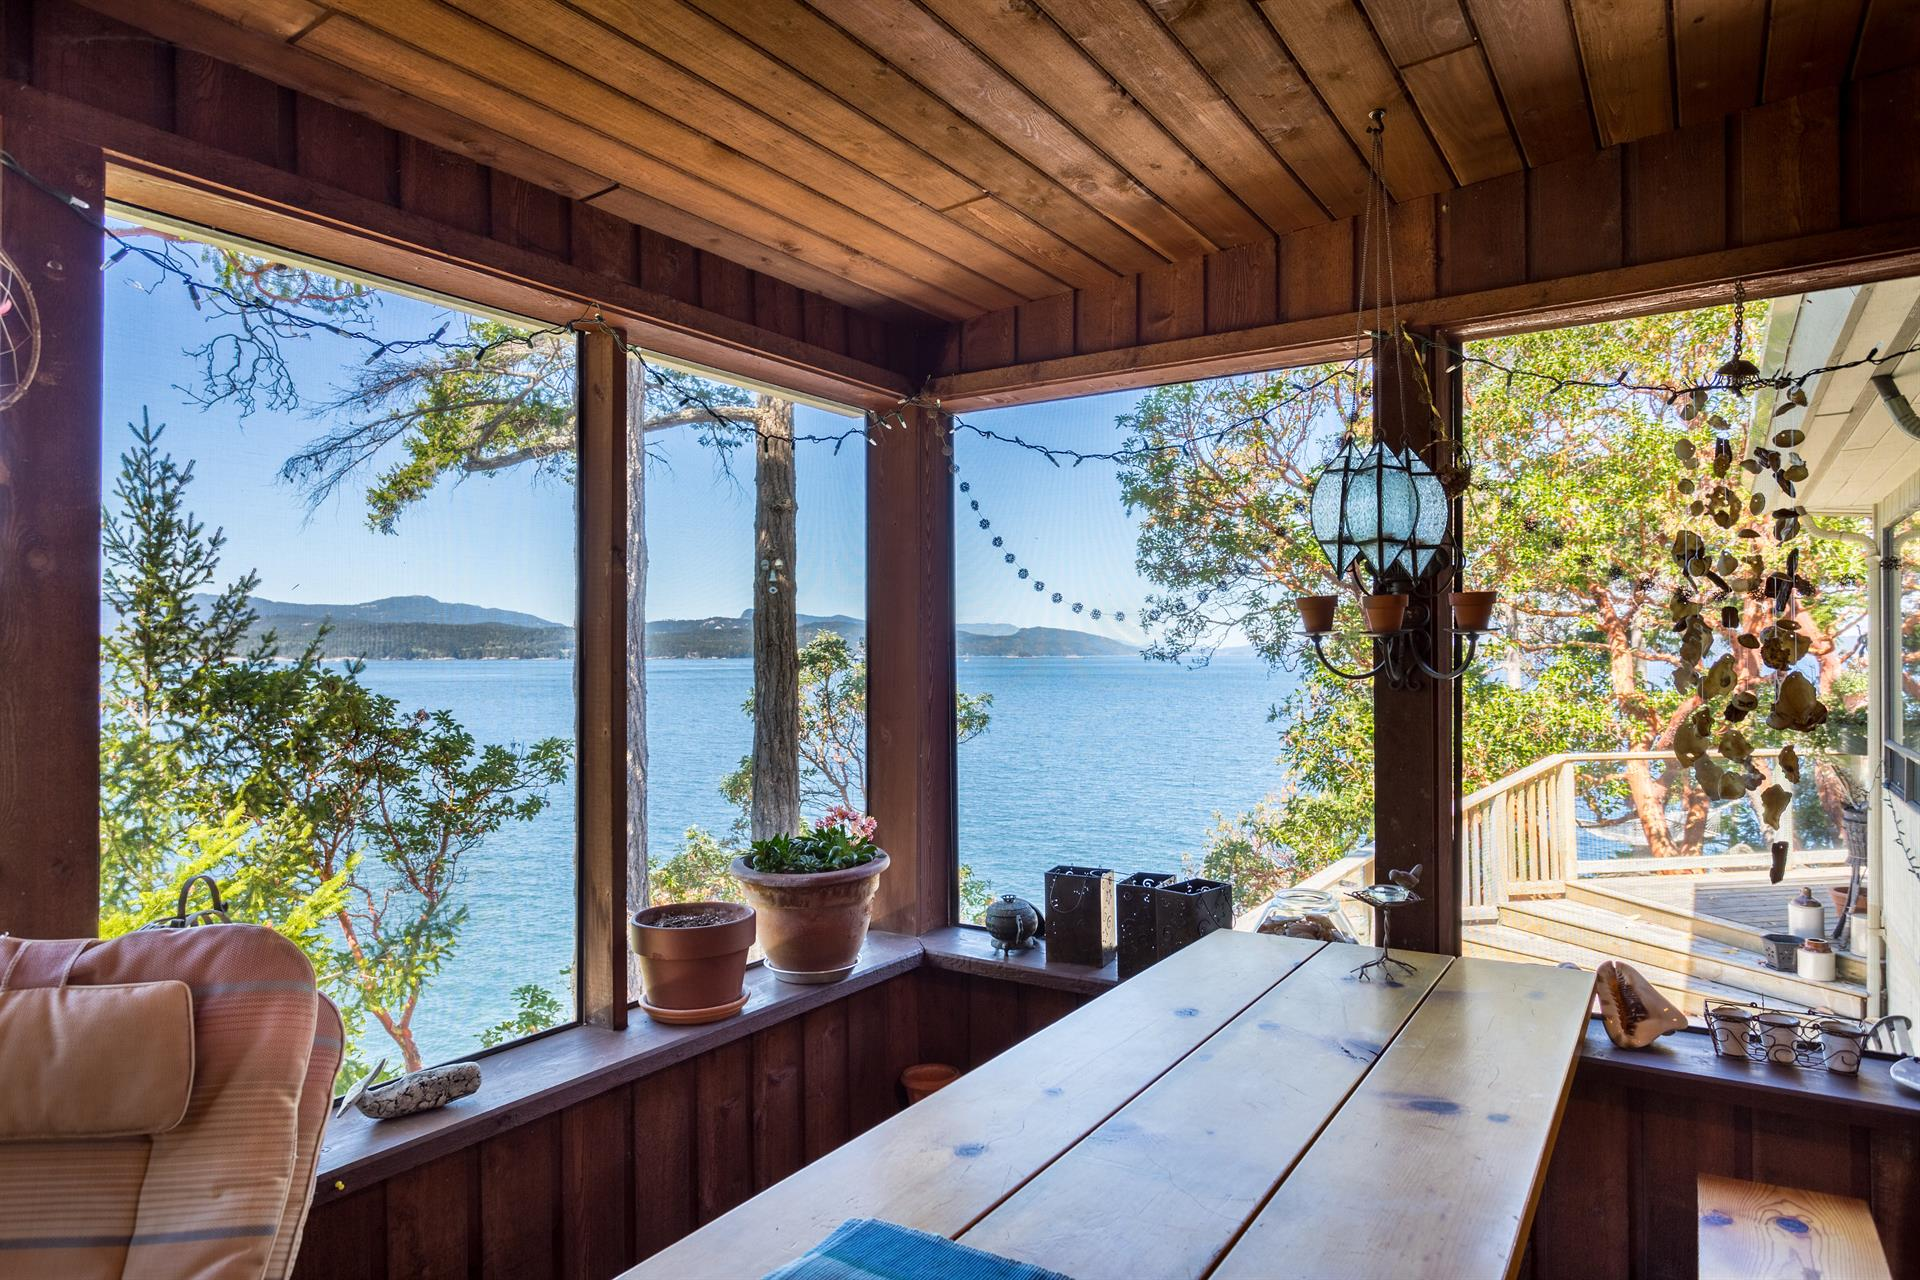 Additional photo for property listing at 2601 Harpoon Rd Pender Island, British Columbia,Kanada